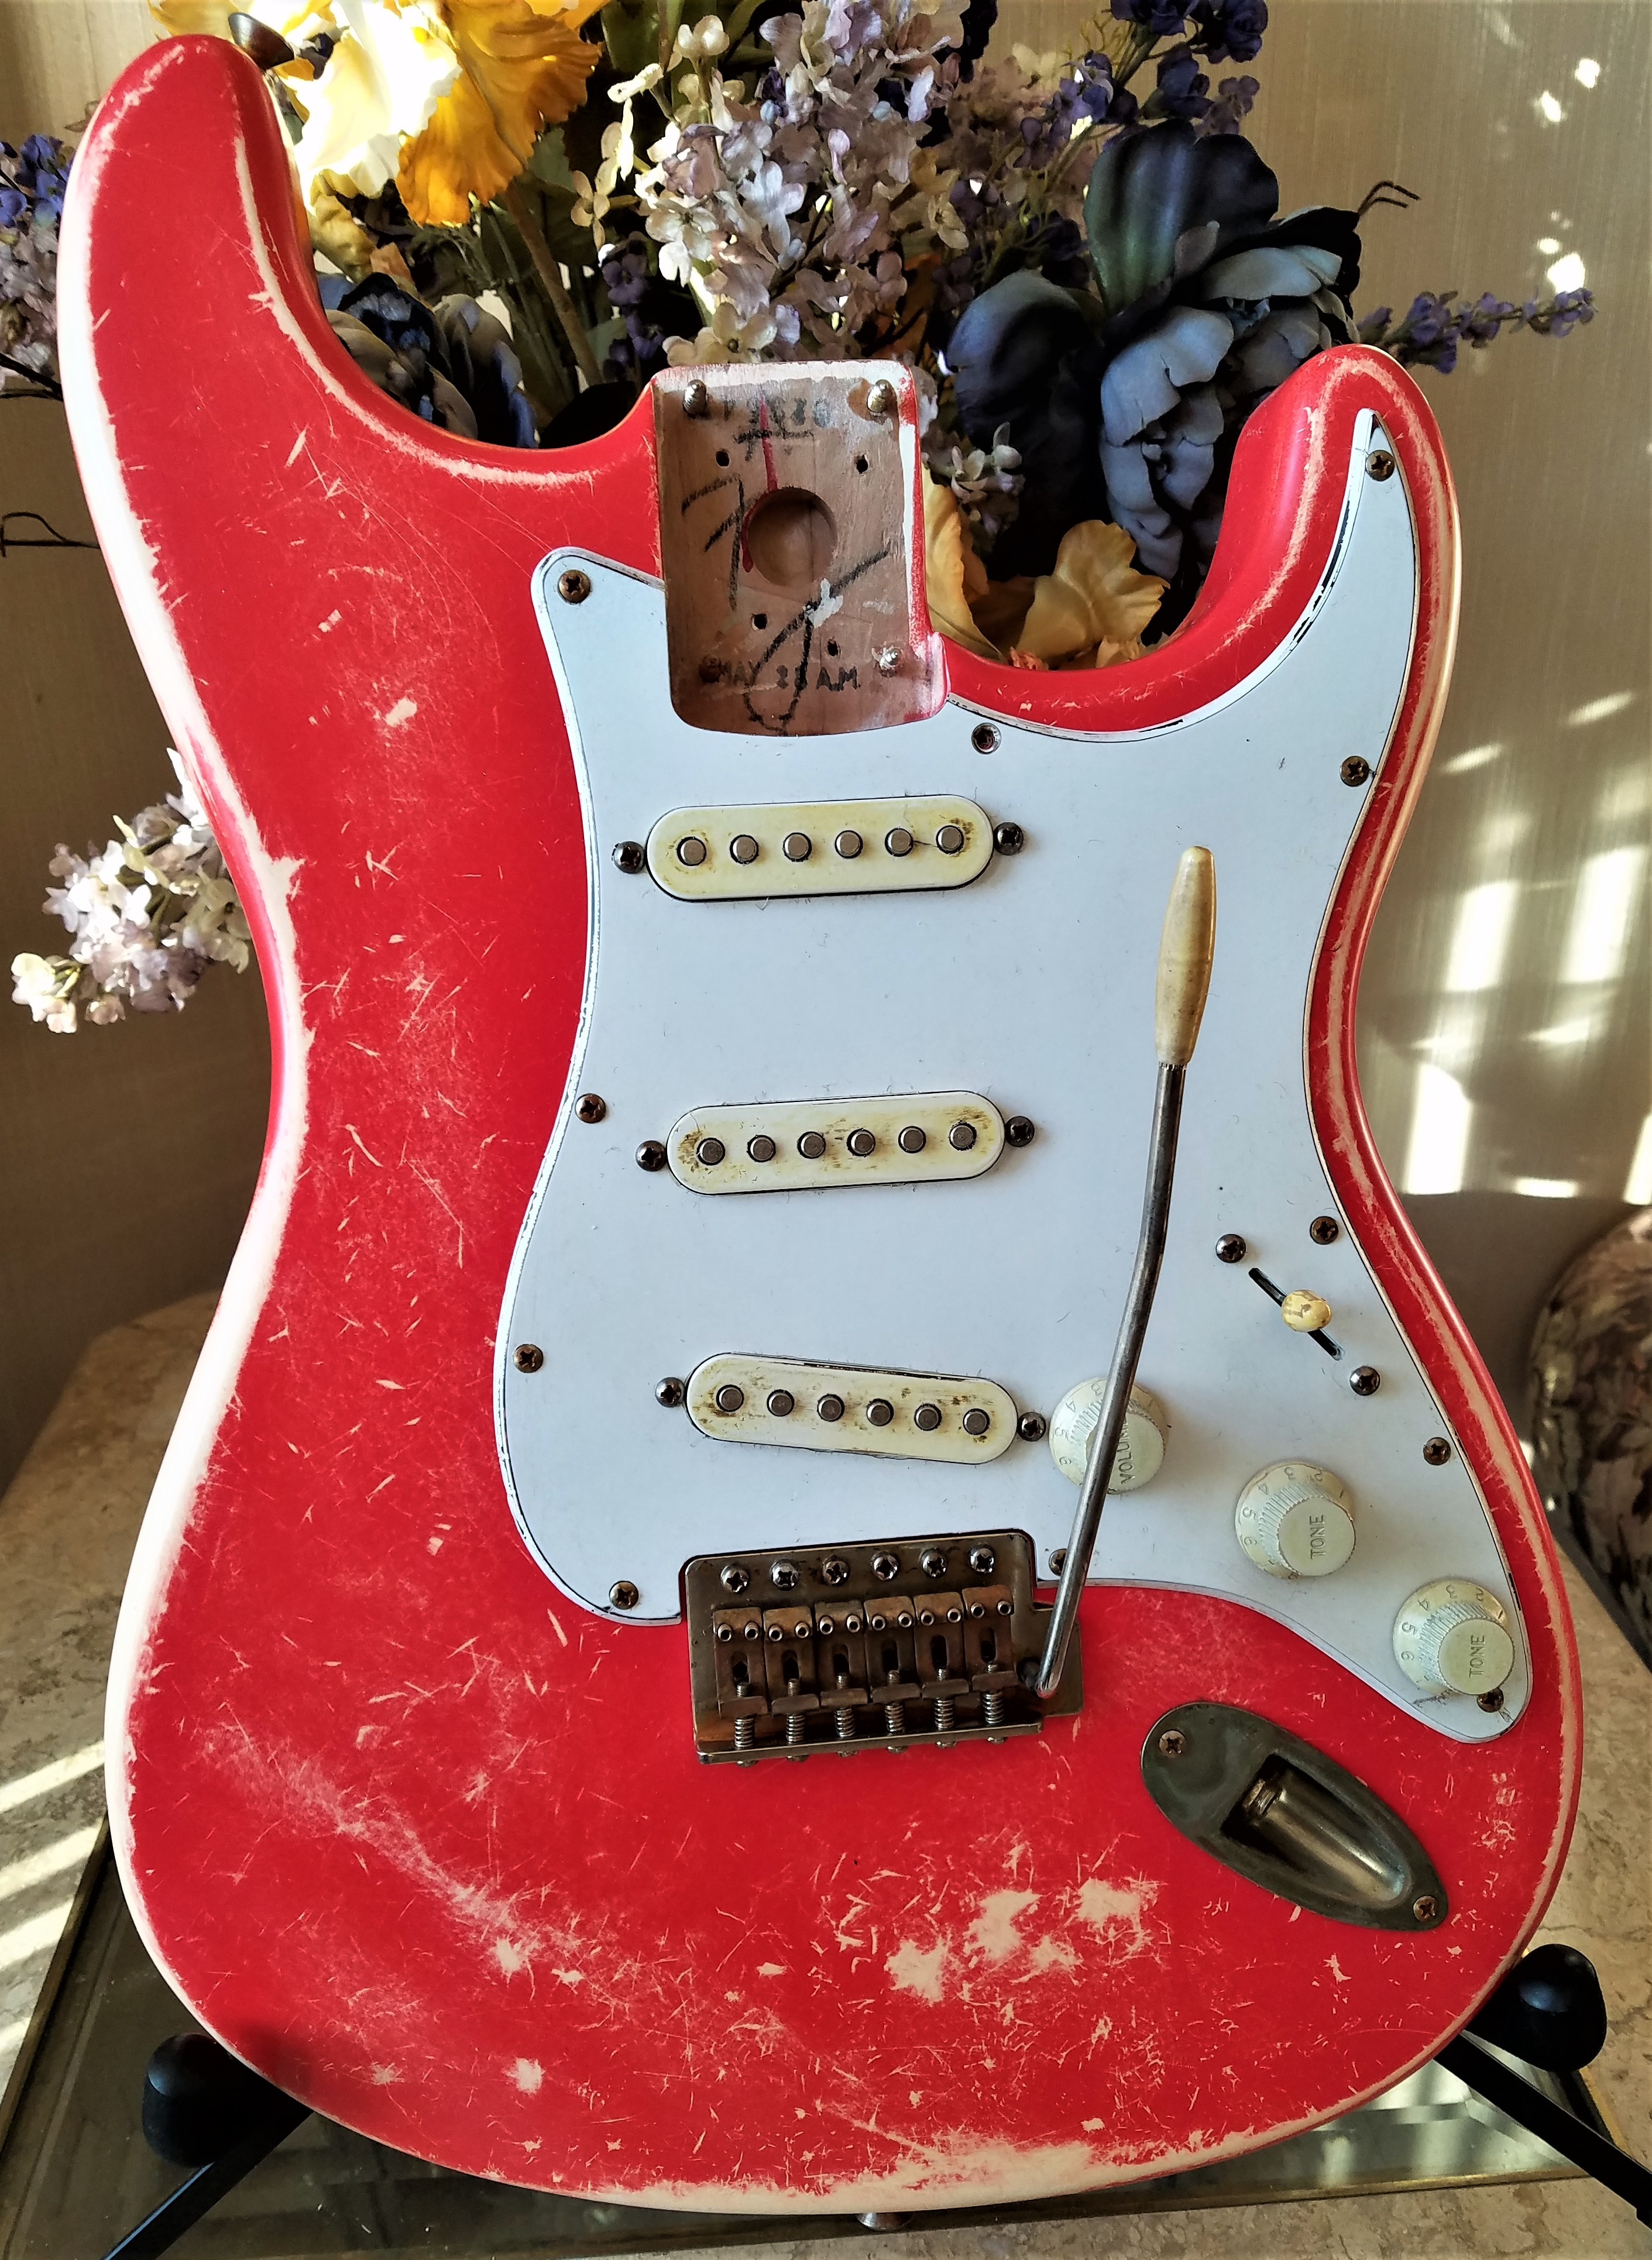 Fender Stratocaster Fiesta Red Loaded Body Custom Relic Guitarwacky.com